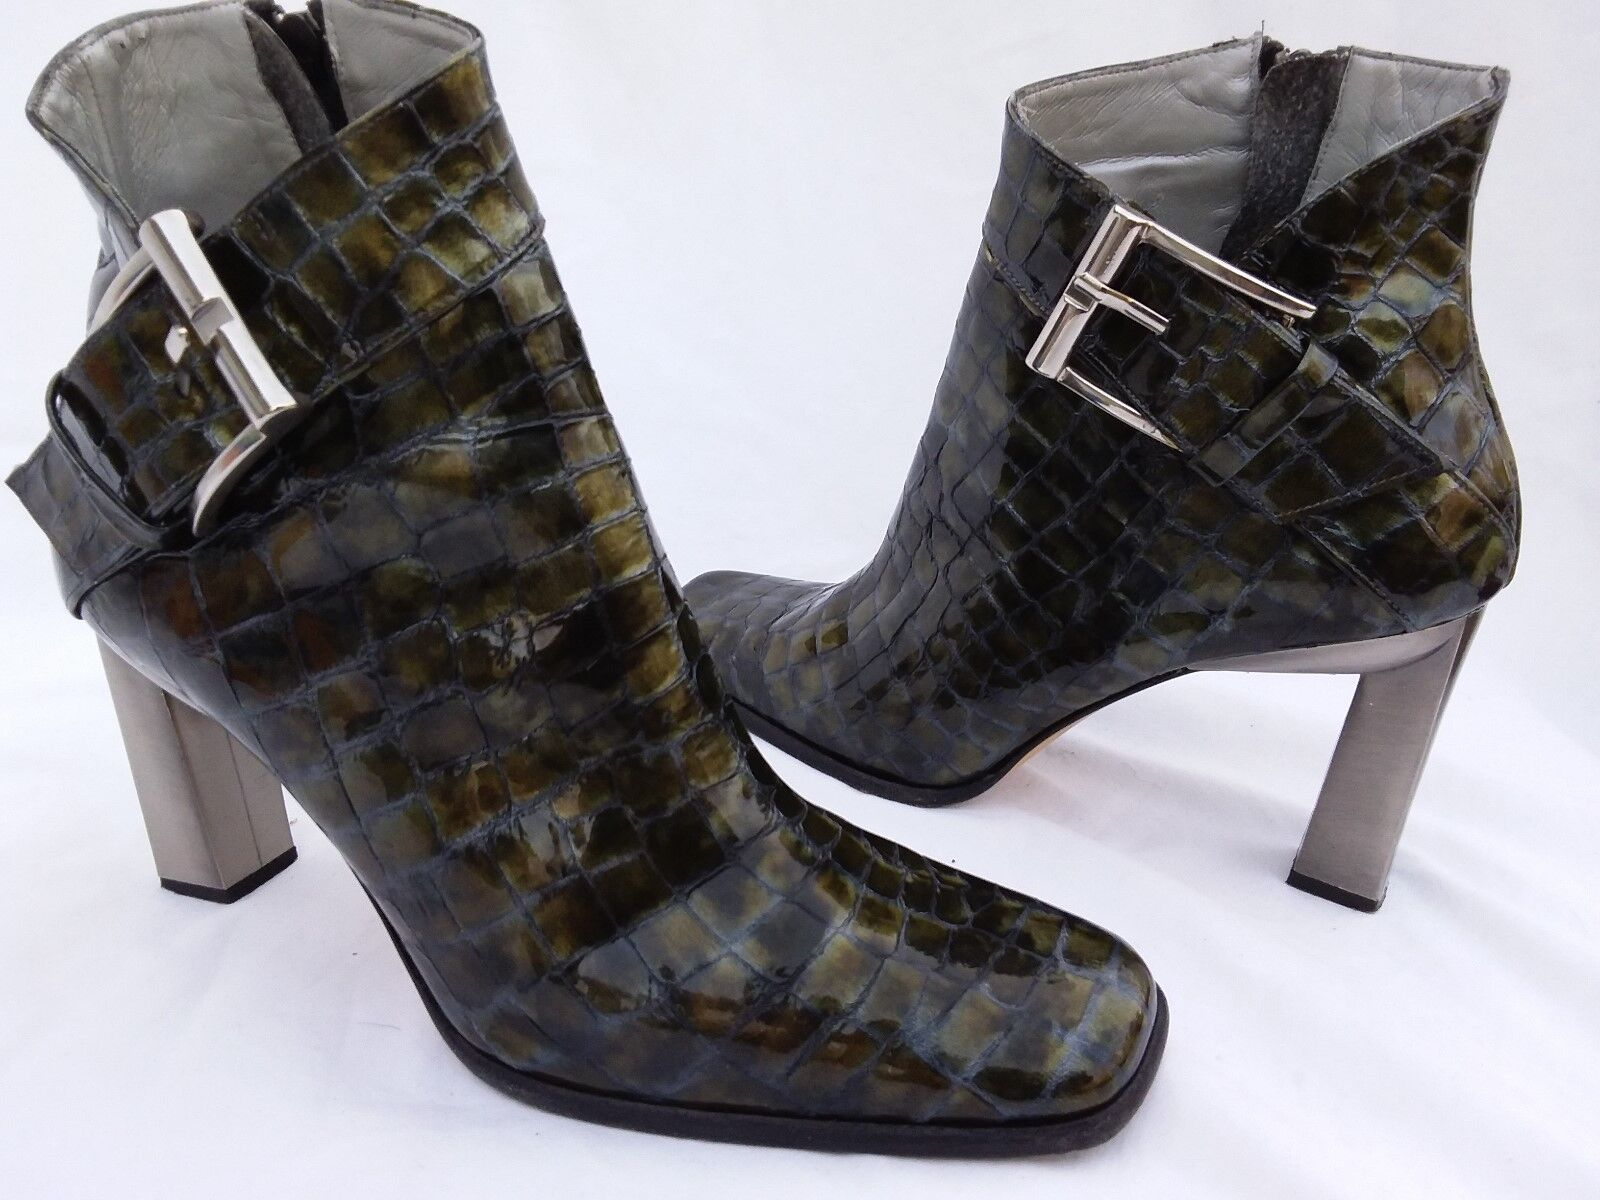 FANTASY COLLECTION - SUSAN - Women's Designer Ankle Boot Size 10B